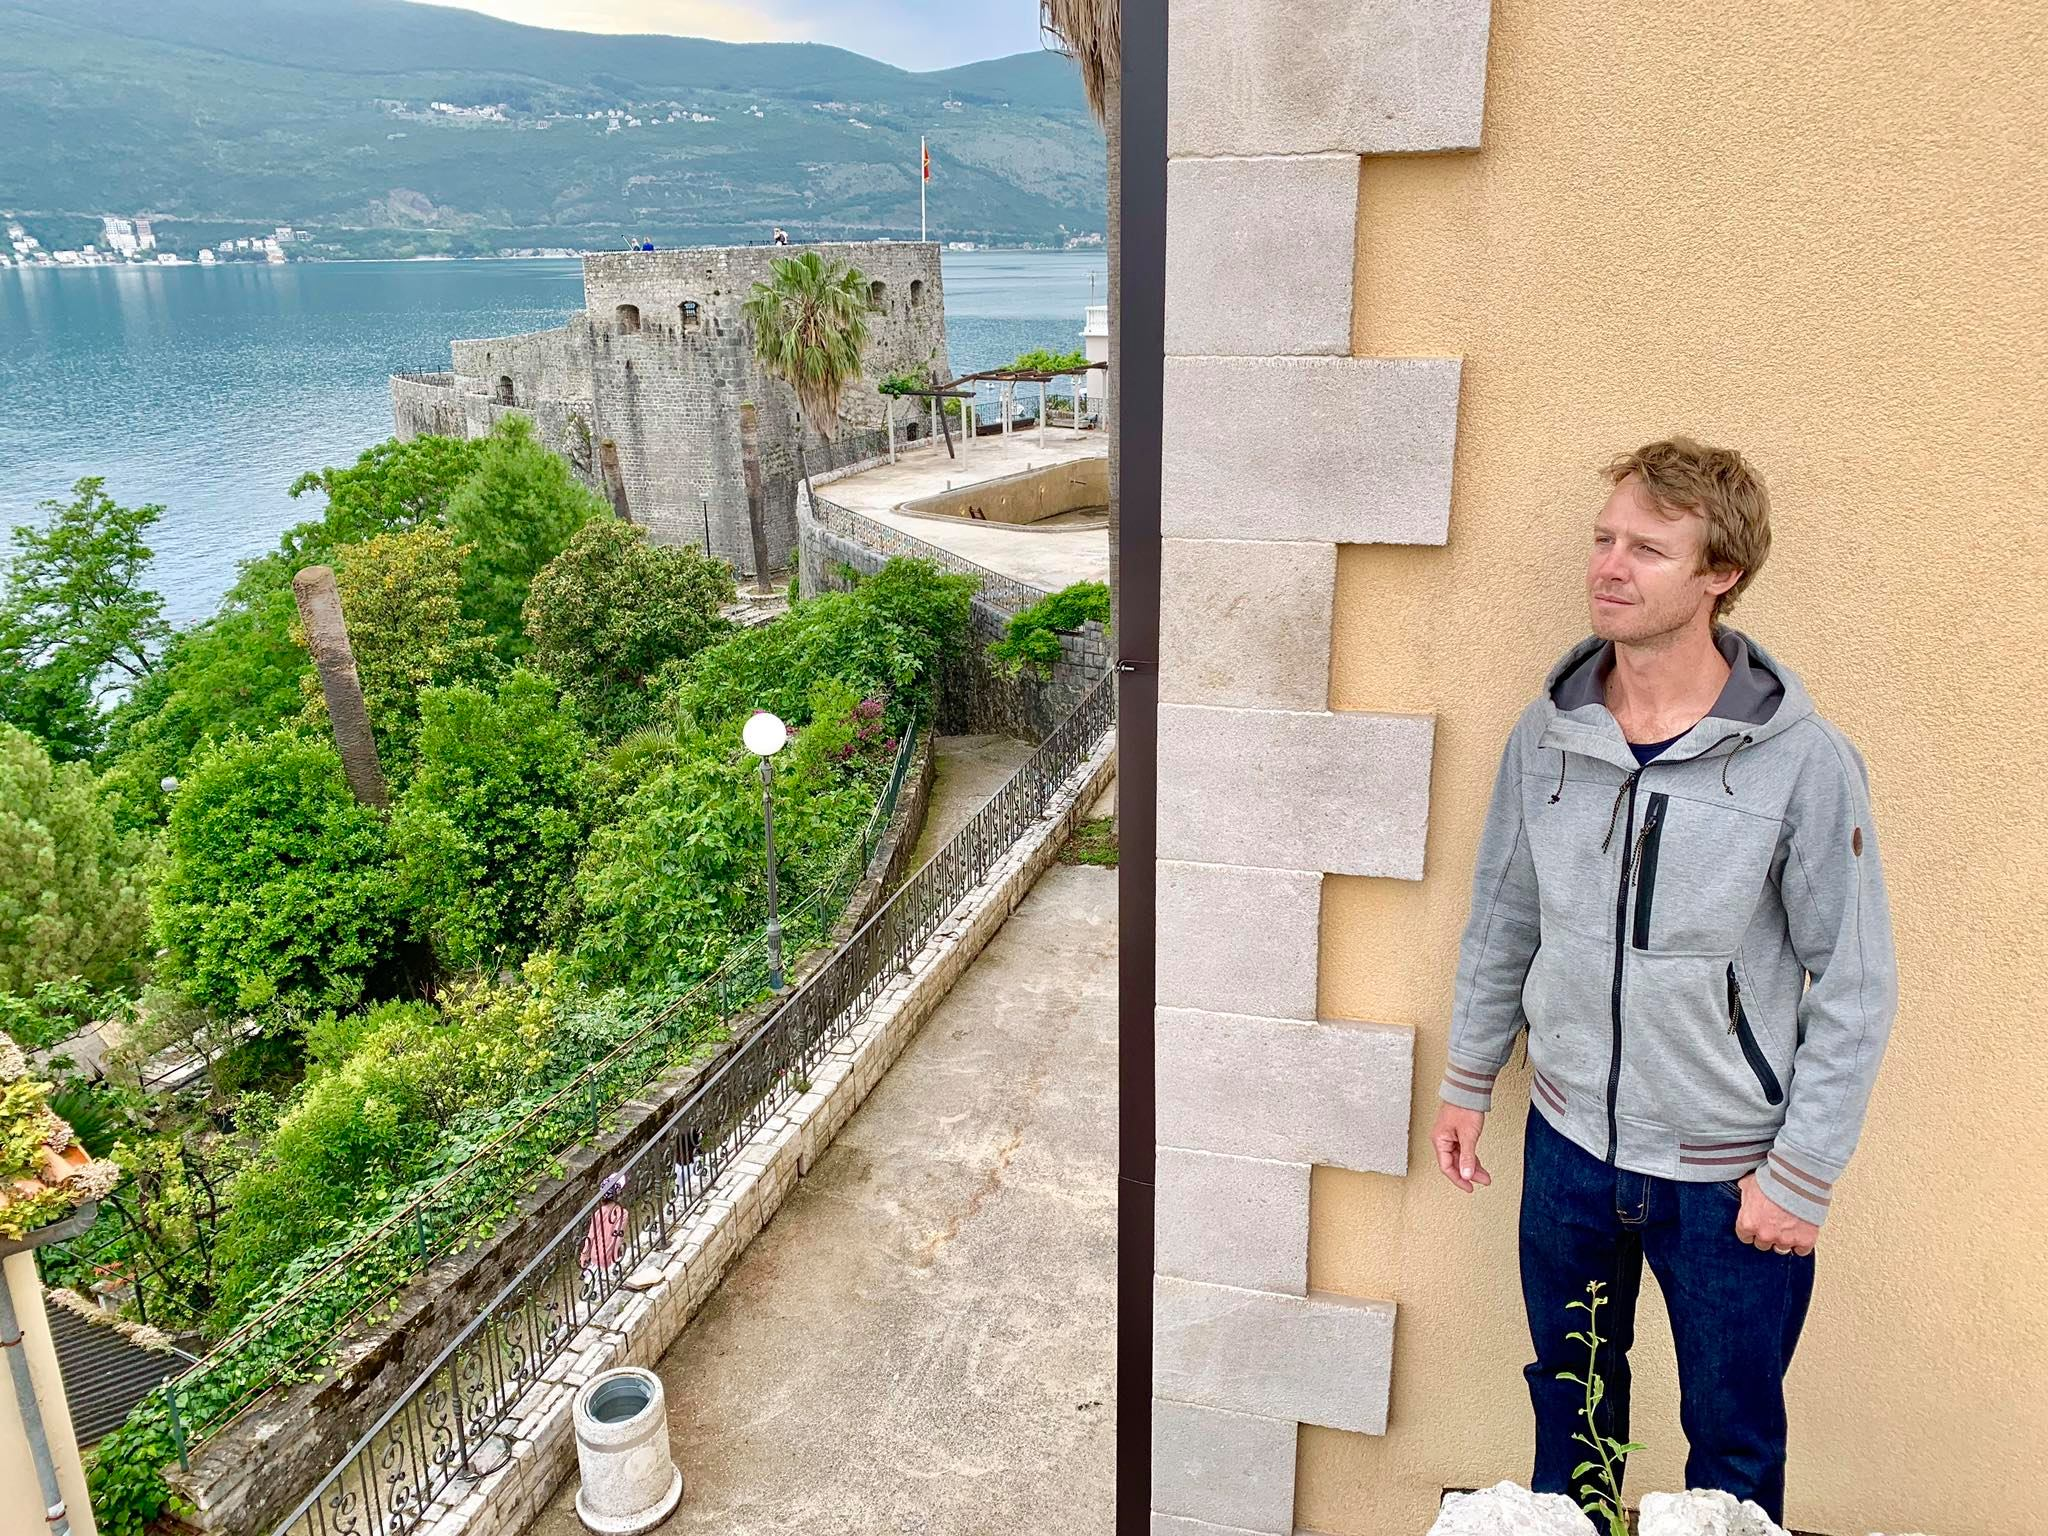 Expat Life in Montenegro Day 3 We have our first visitor already in our new home here in Herceg Novi25.jpg